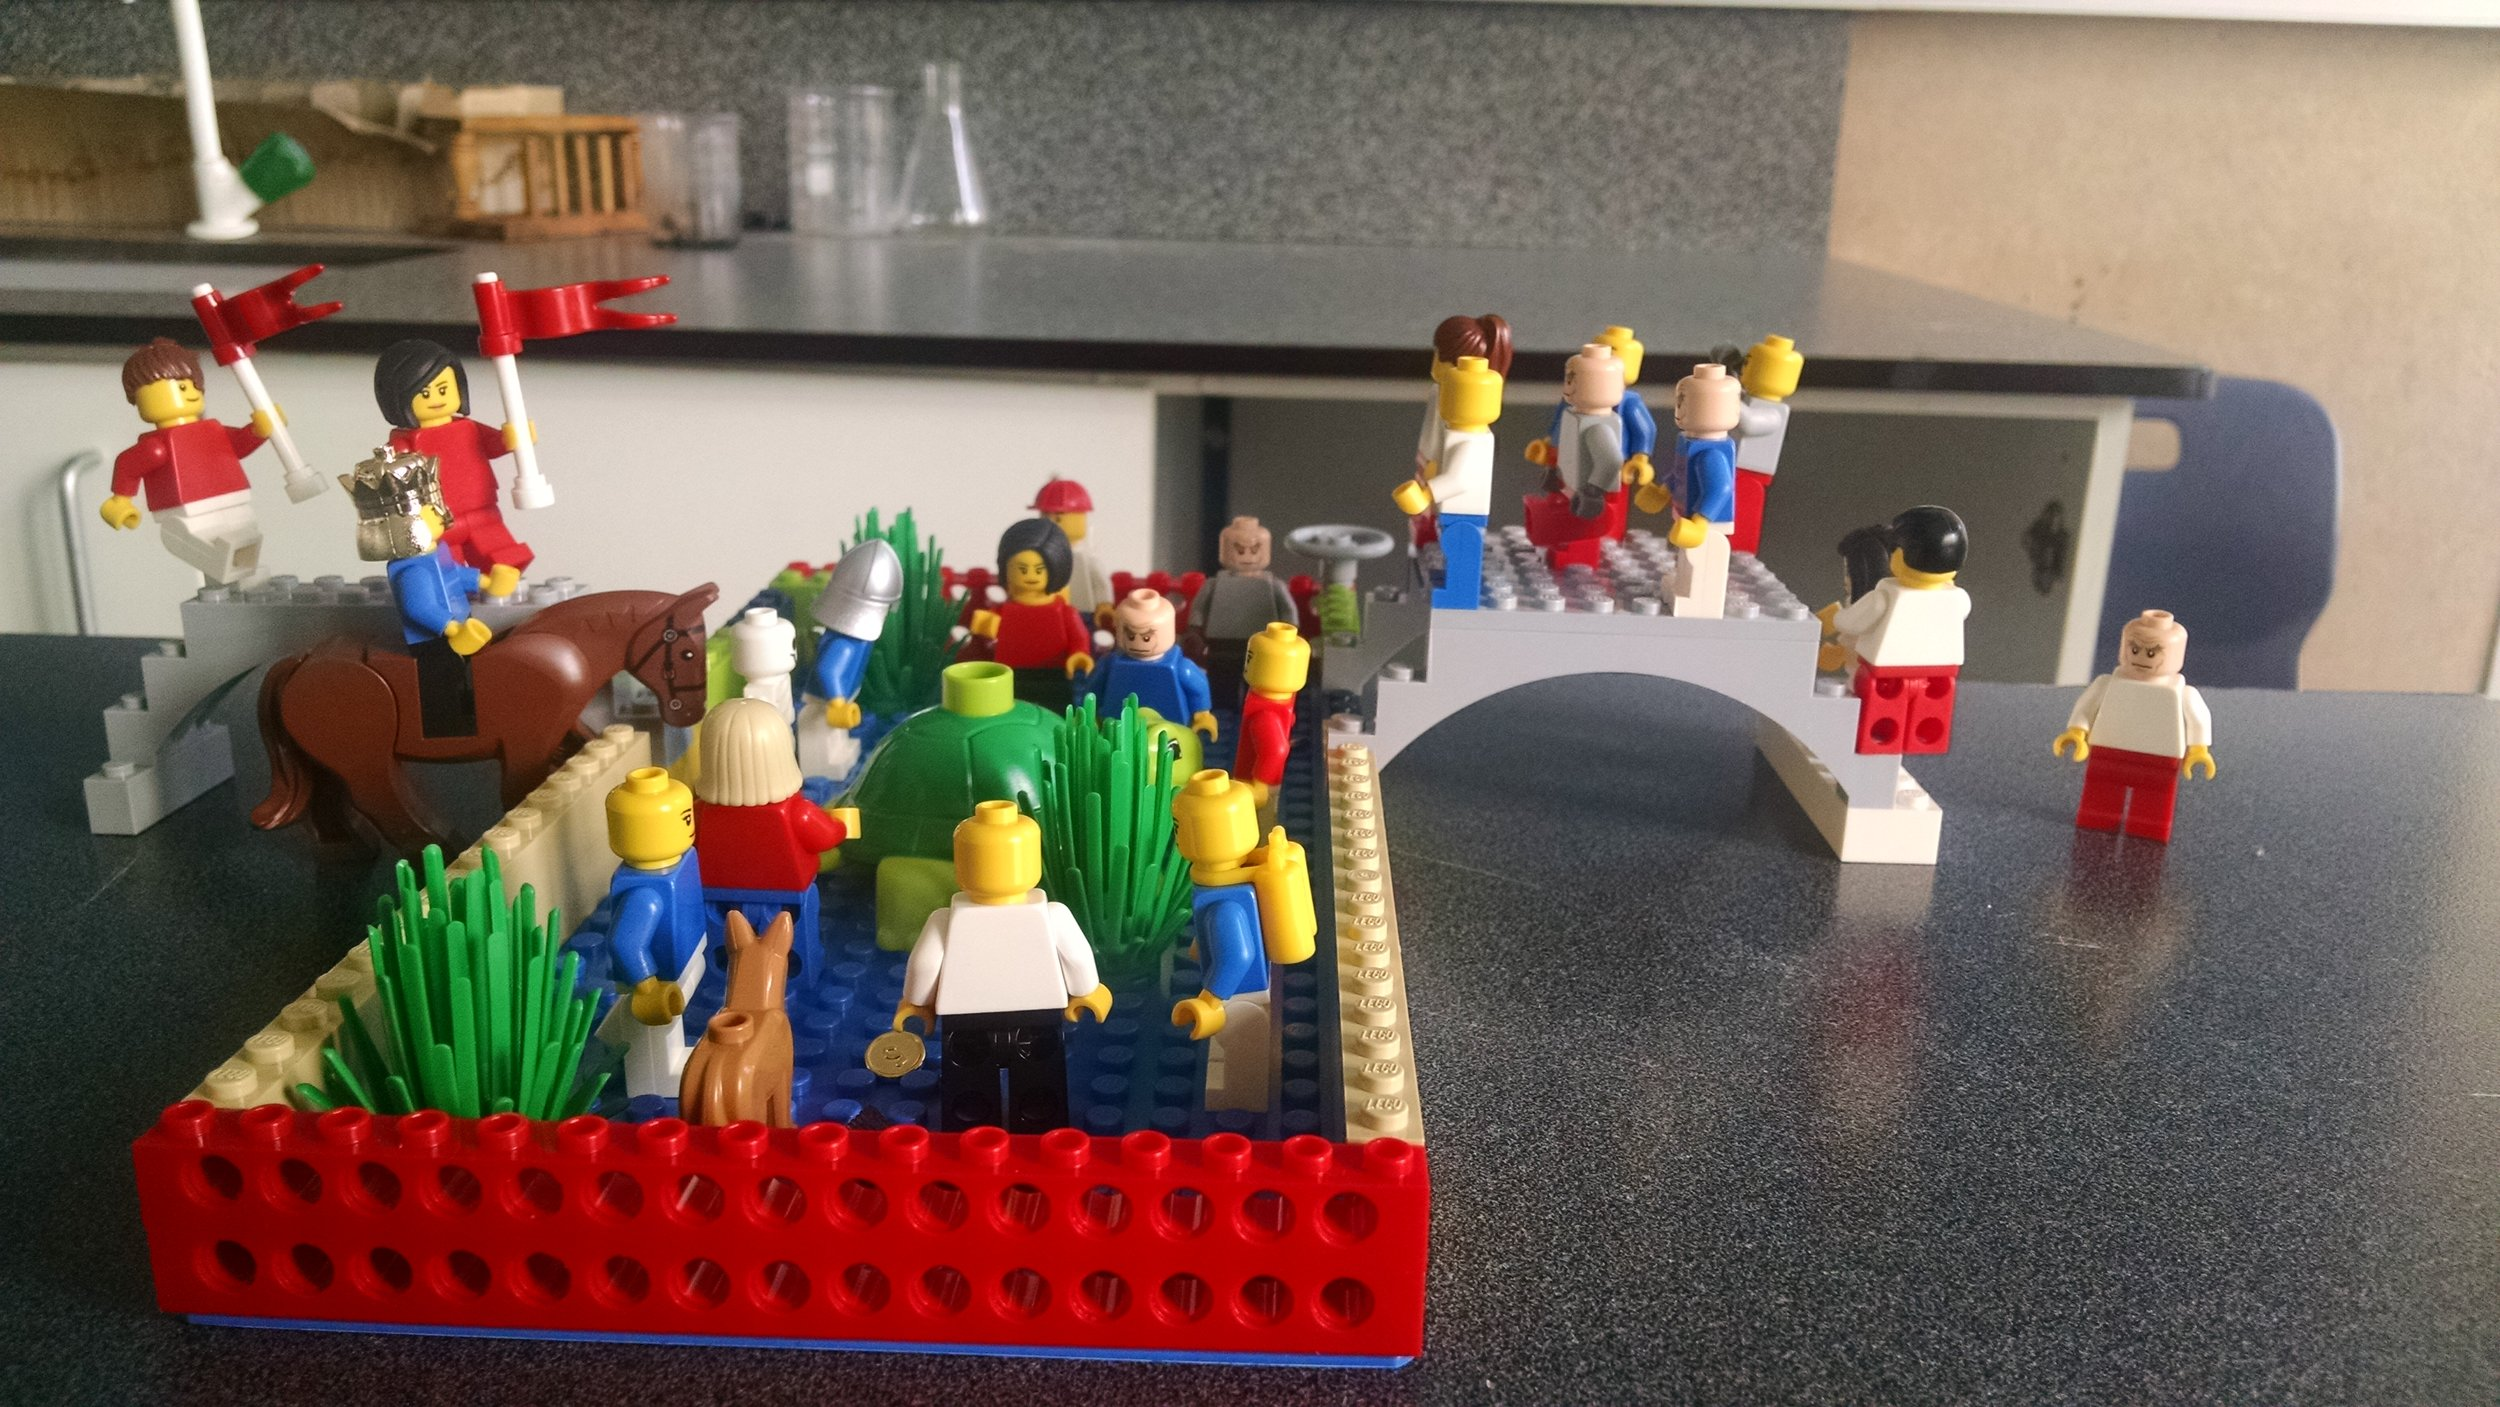 One of our student groups' designs: 'ordinary leadership' to them looks like a supportive community encircled by a low wall to keep people safe, and bridges to bring others into the community.